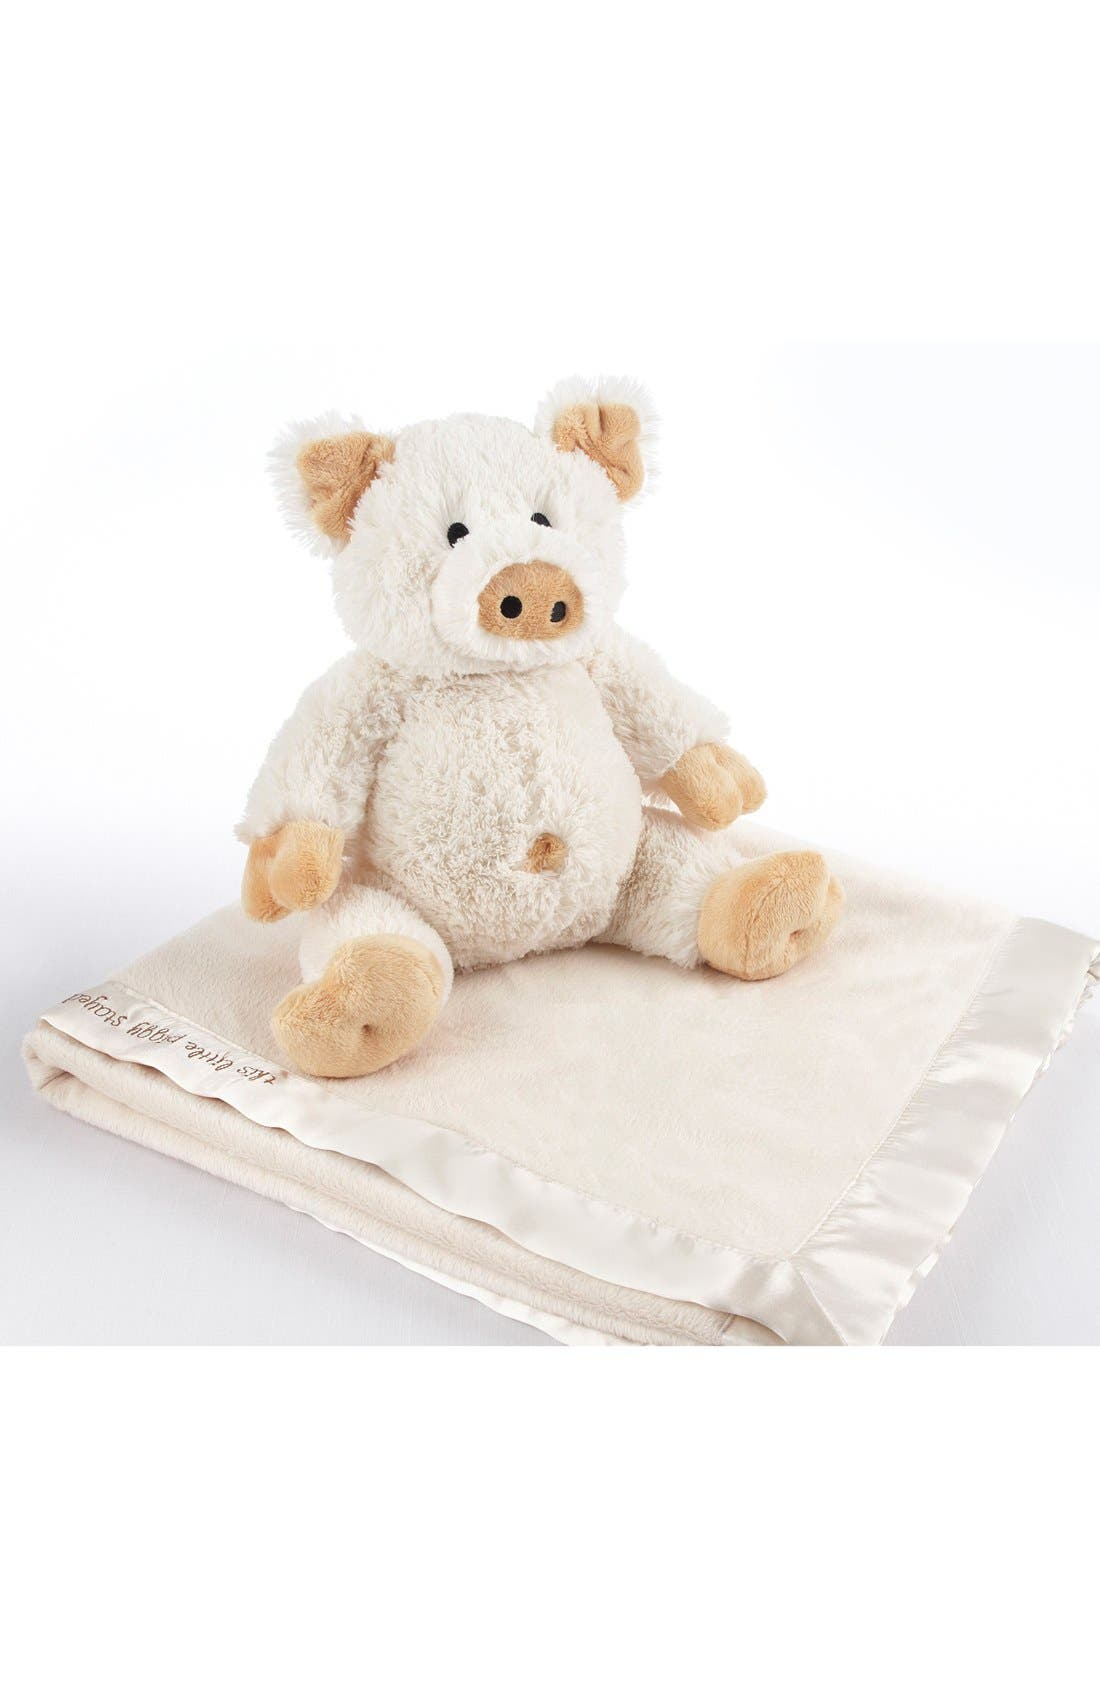 Baby Aspen Pig Stuffed Animal & Blanket Set